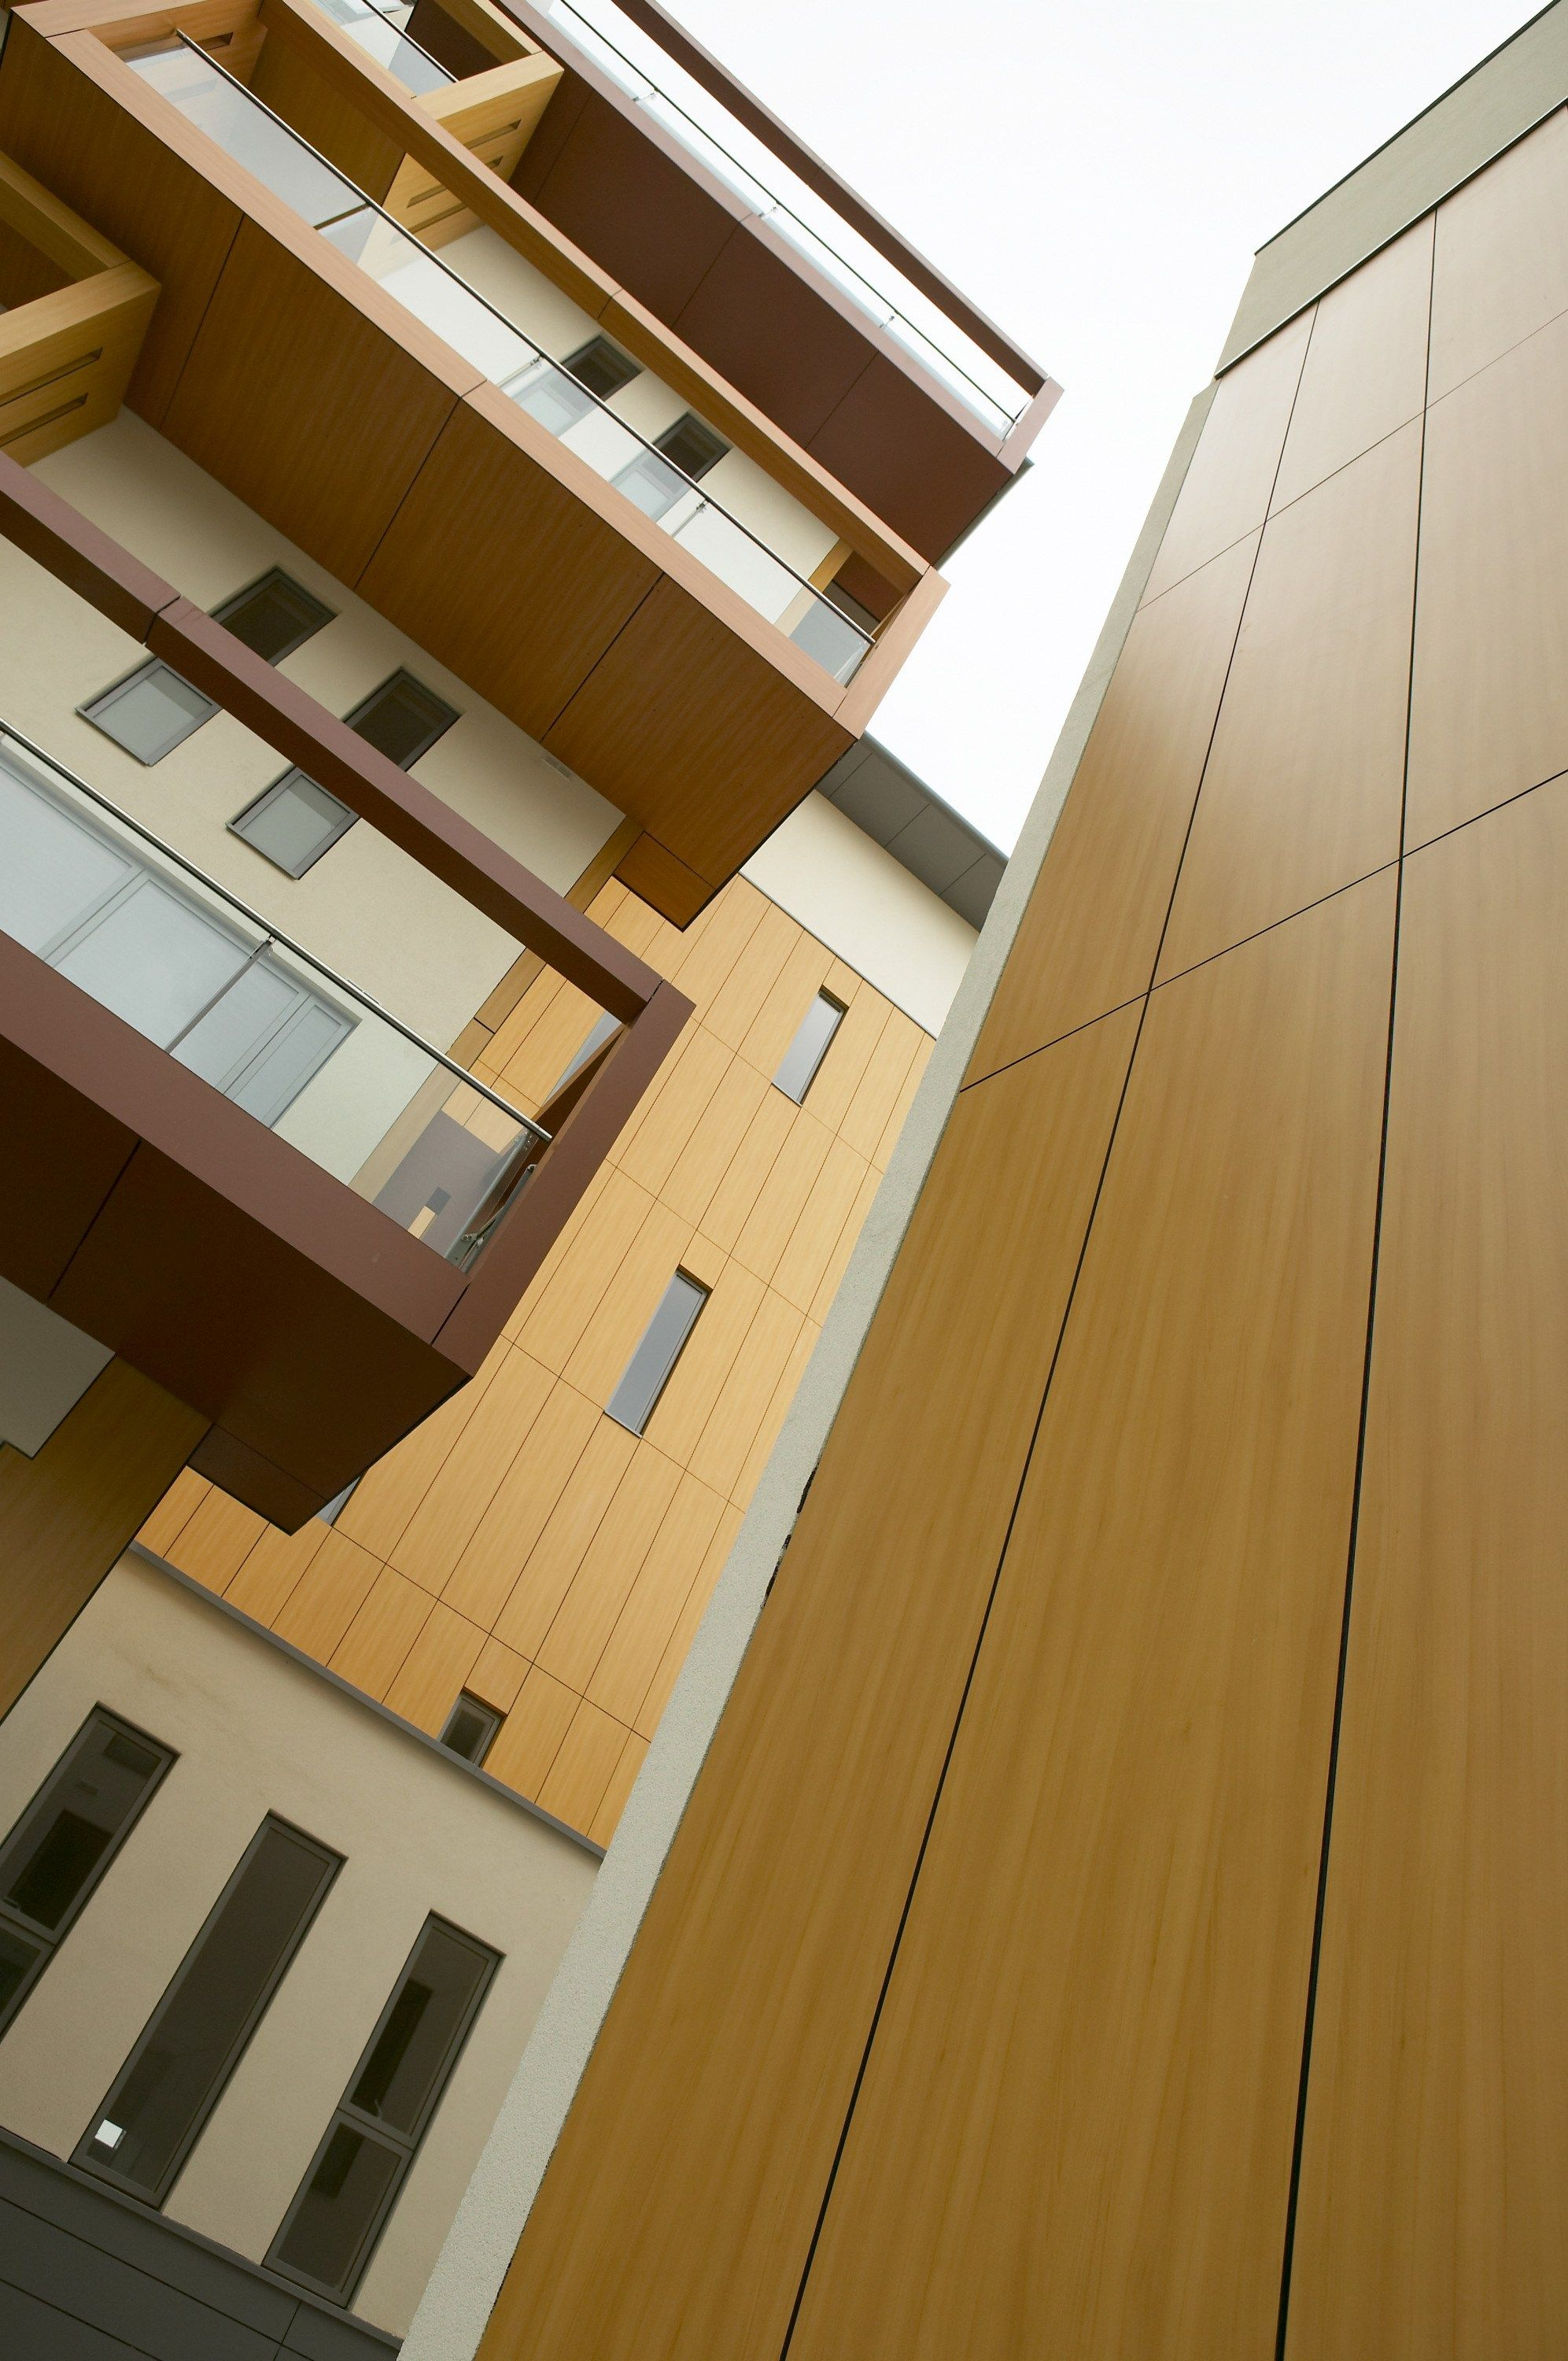 HPL WALL PANEL WITH WOOD EFFECT TRESPA® METEON® | WOOD DECORS BY ...